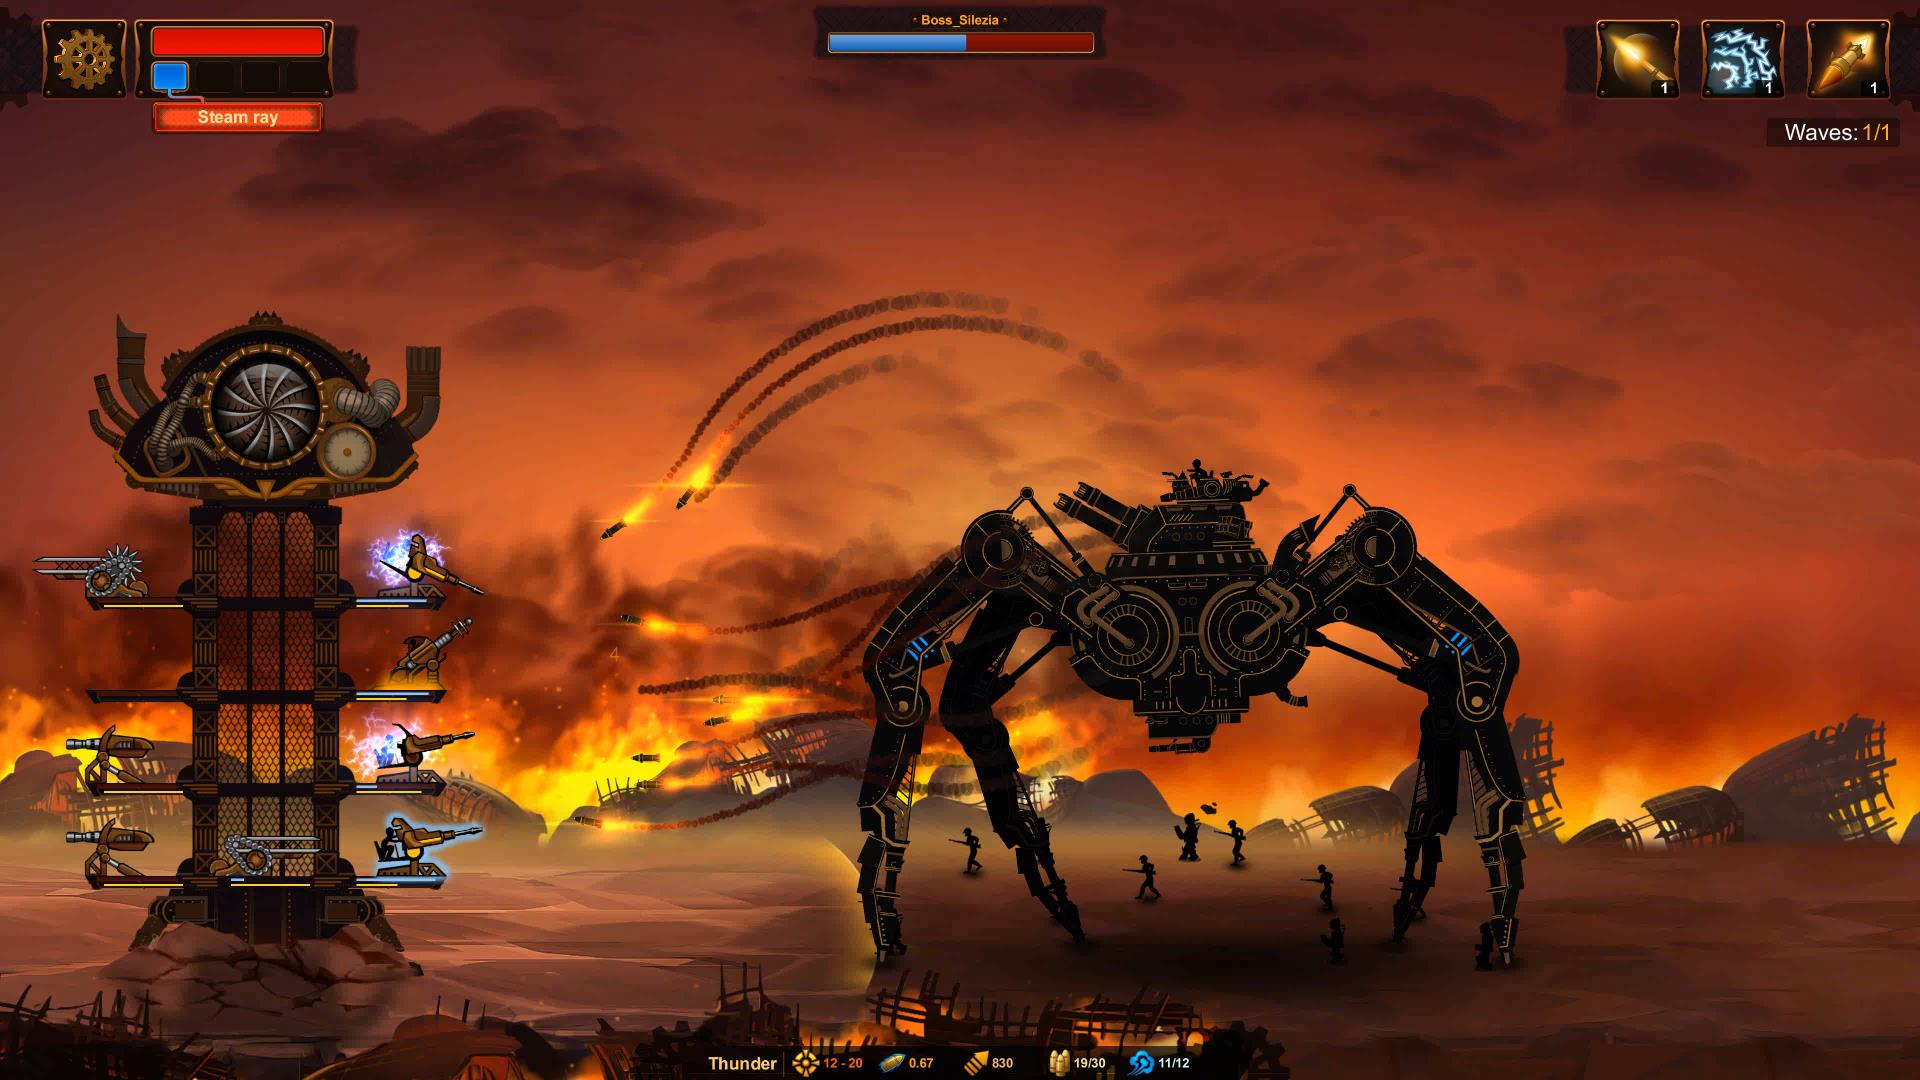 Steampunk Tower 2 Is Headed To PS4, Nintendo Switch And Xbox One As Of December 4th